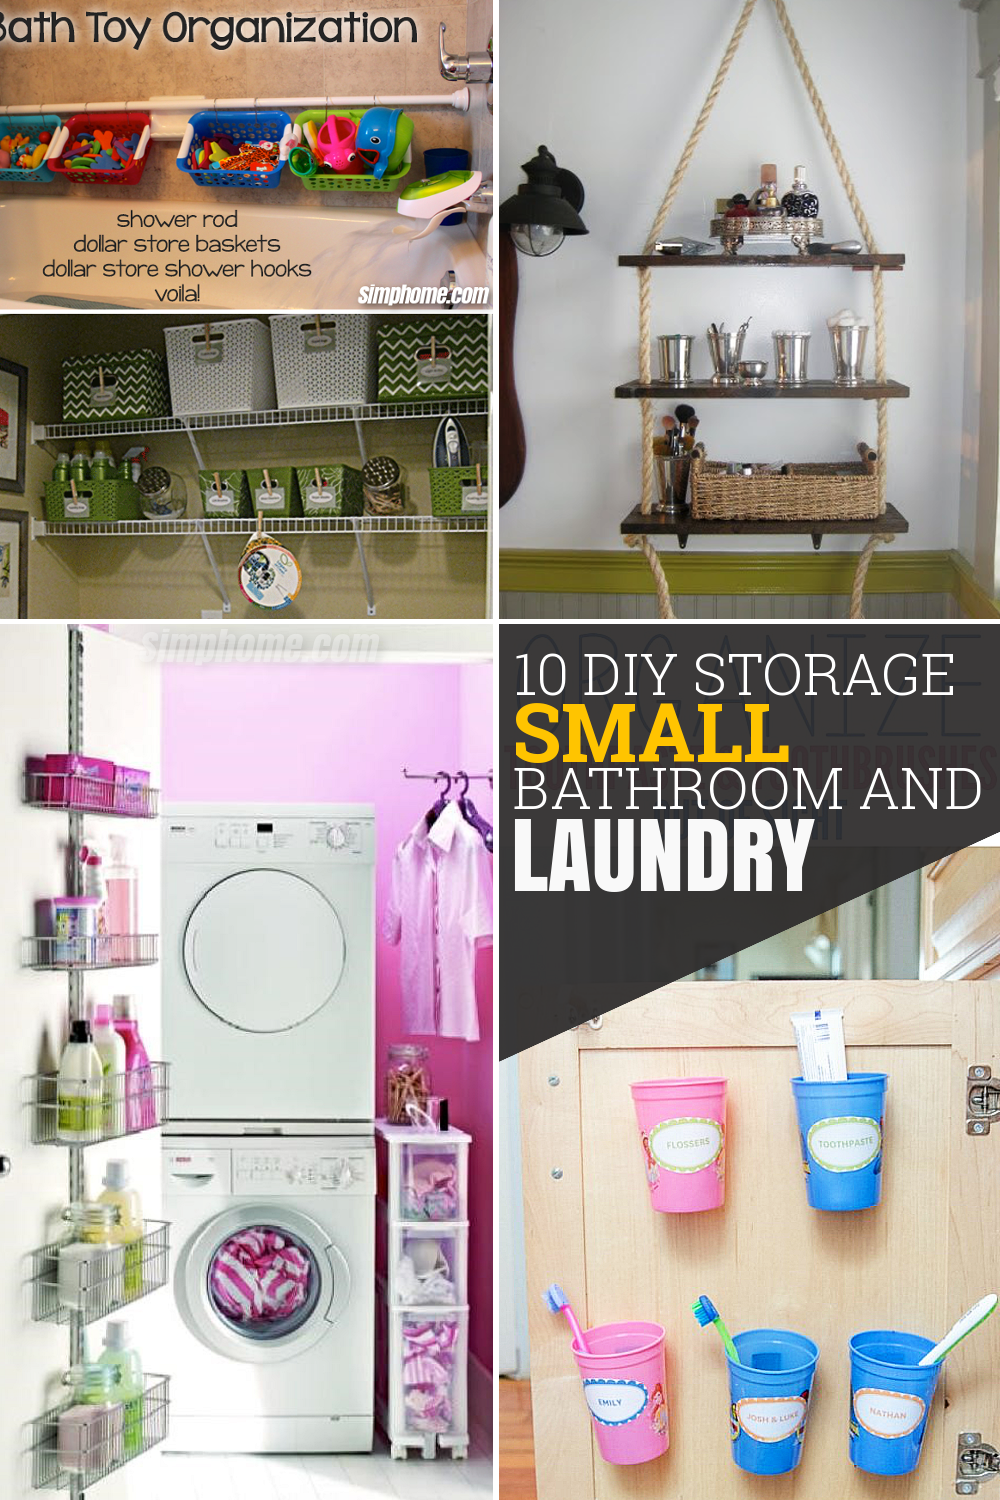 10 DIY Storage Ideas for Small Bathroom and Laundry via Simphome featured pinterest